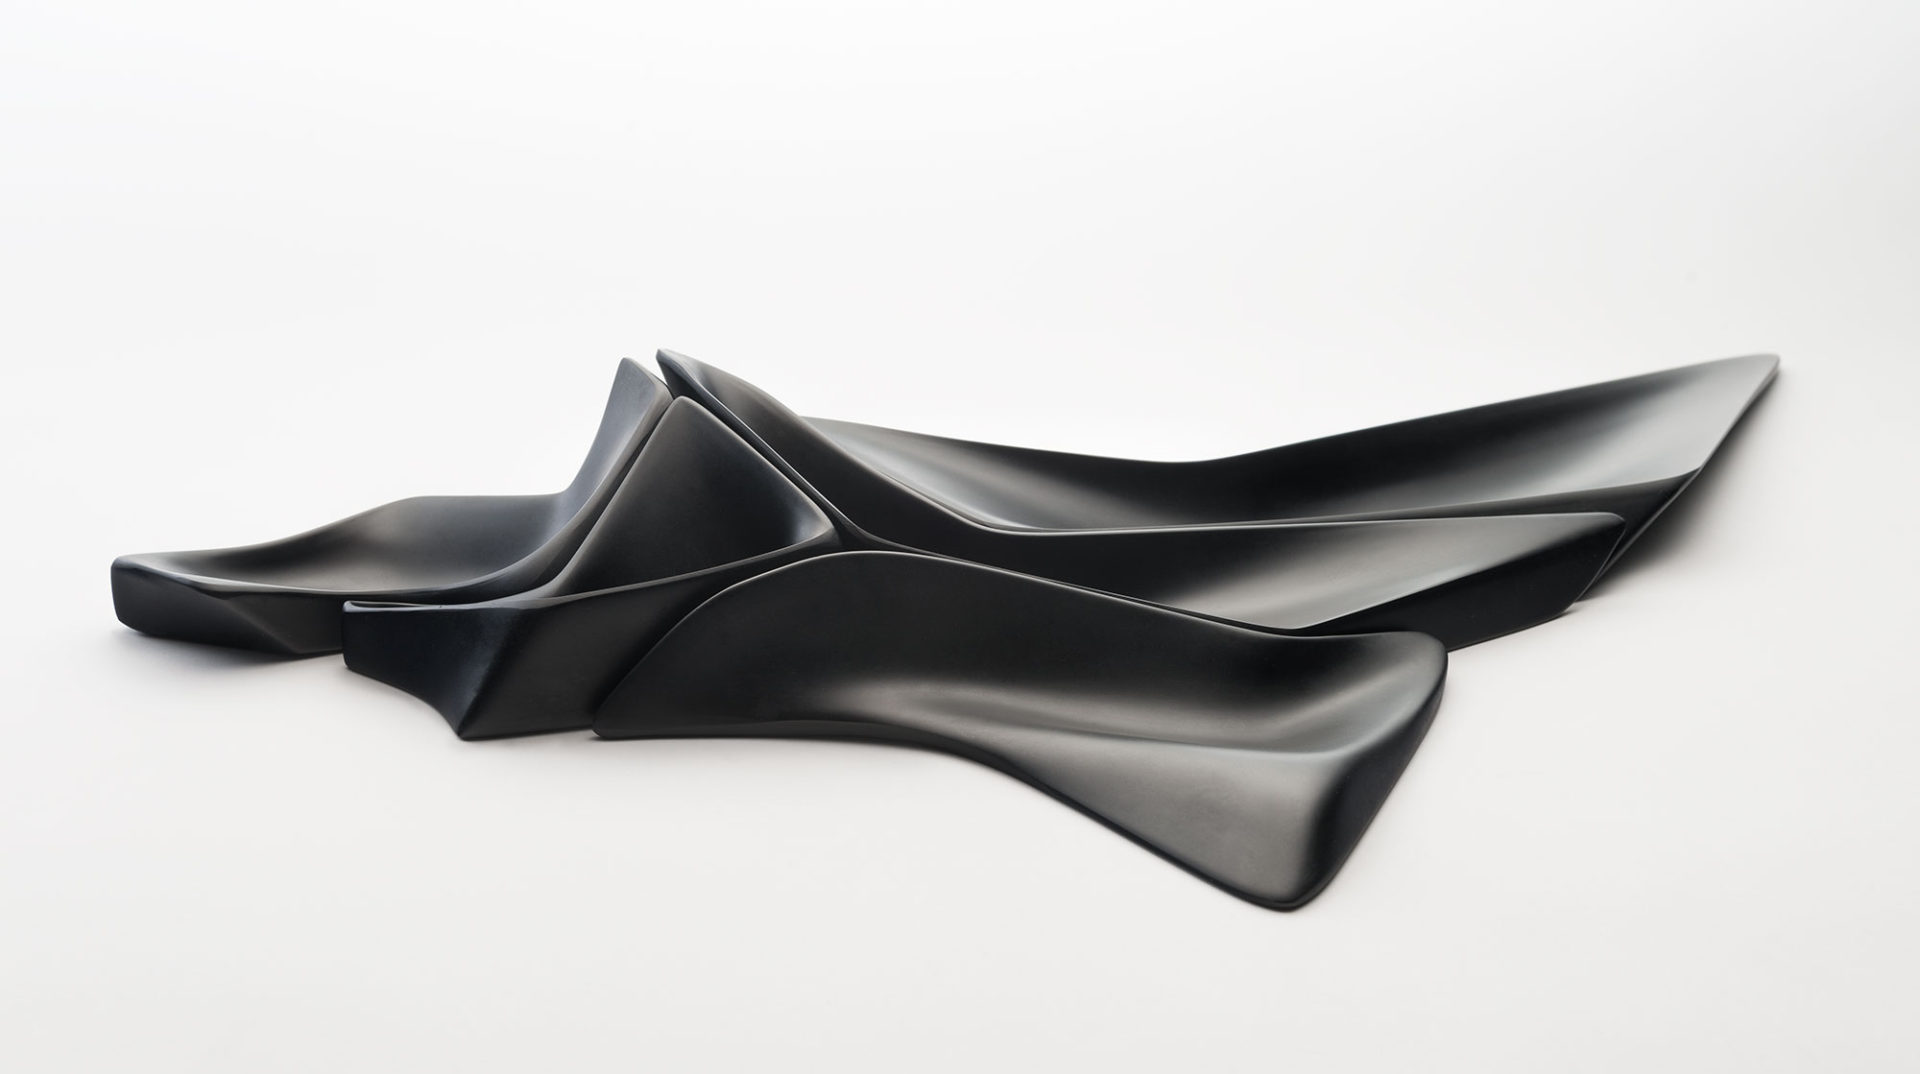 Centerpiece of five assembled elements of sculptural black plastic in various sizes and shapes that fit together like a puzzle.